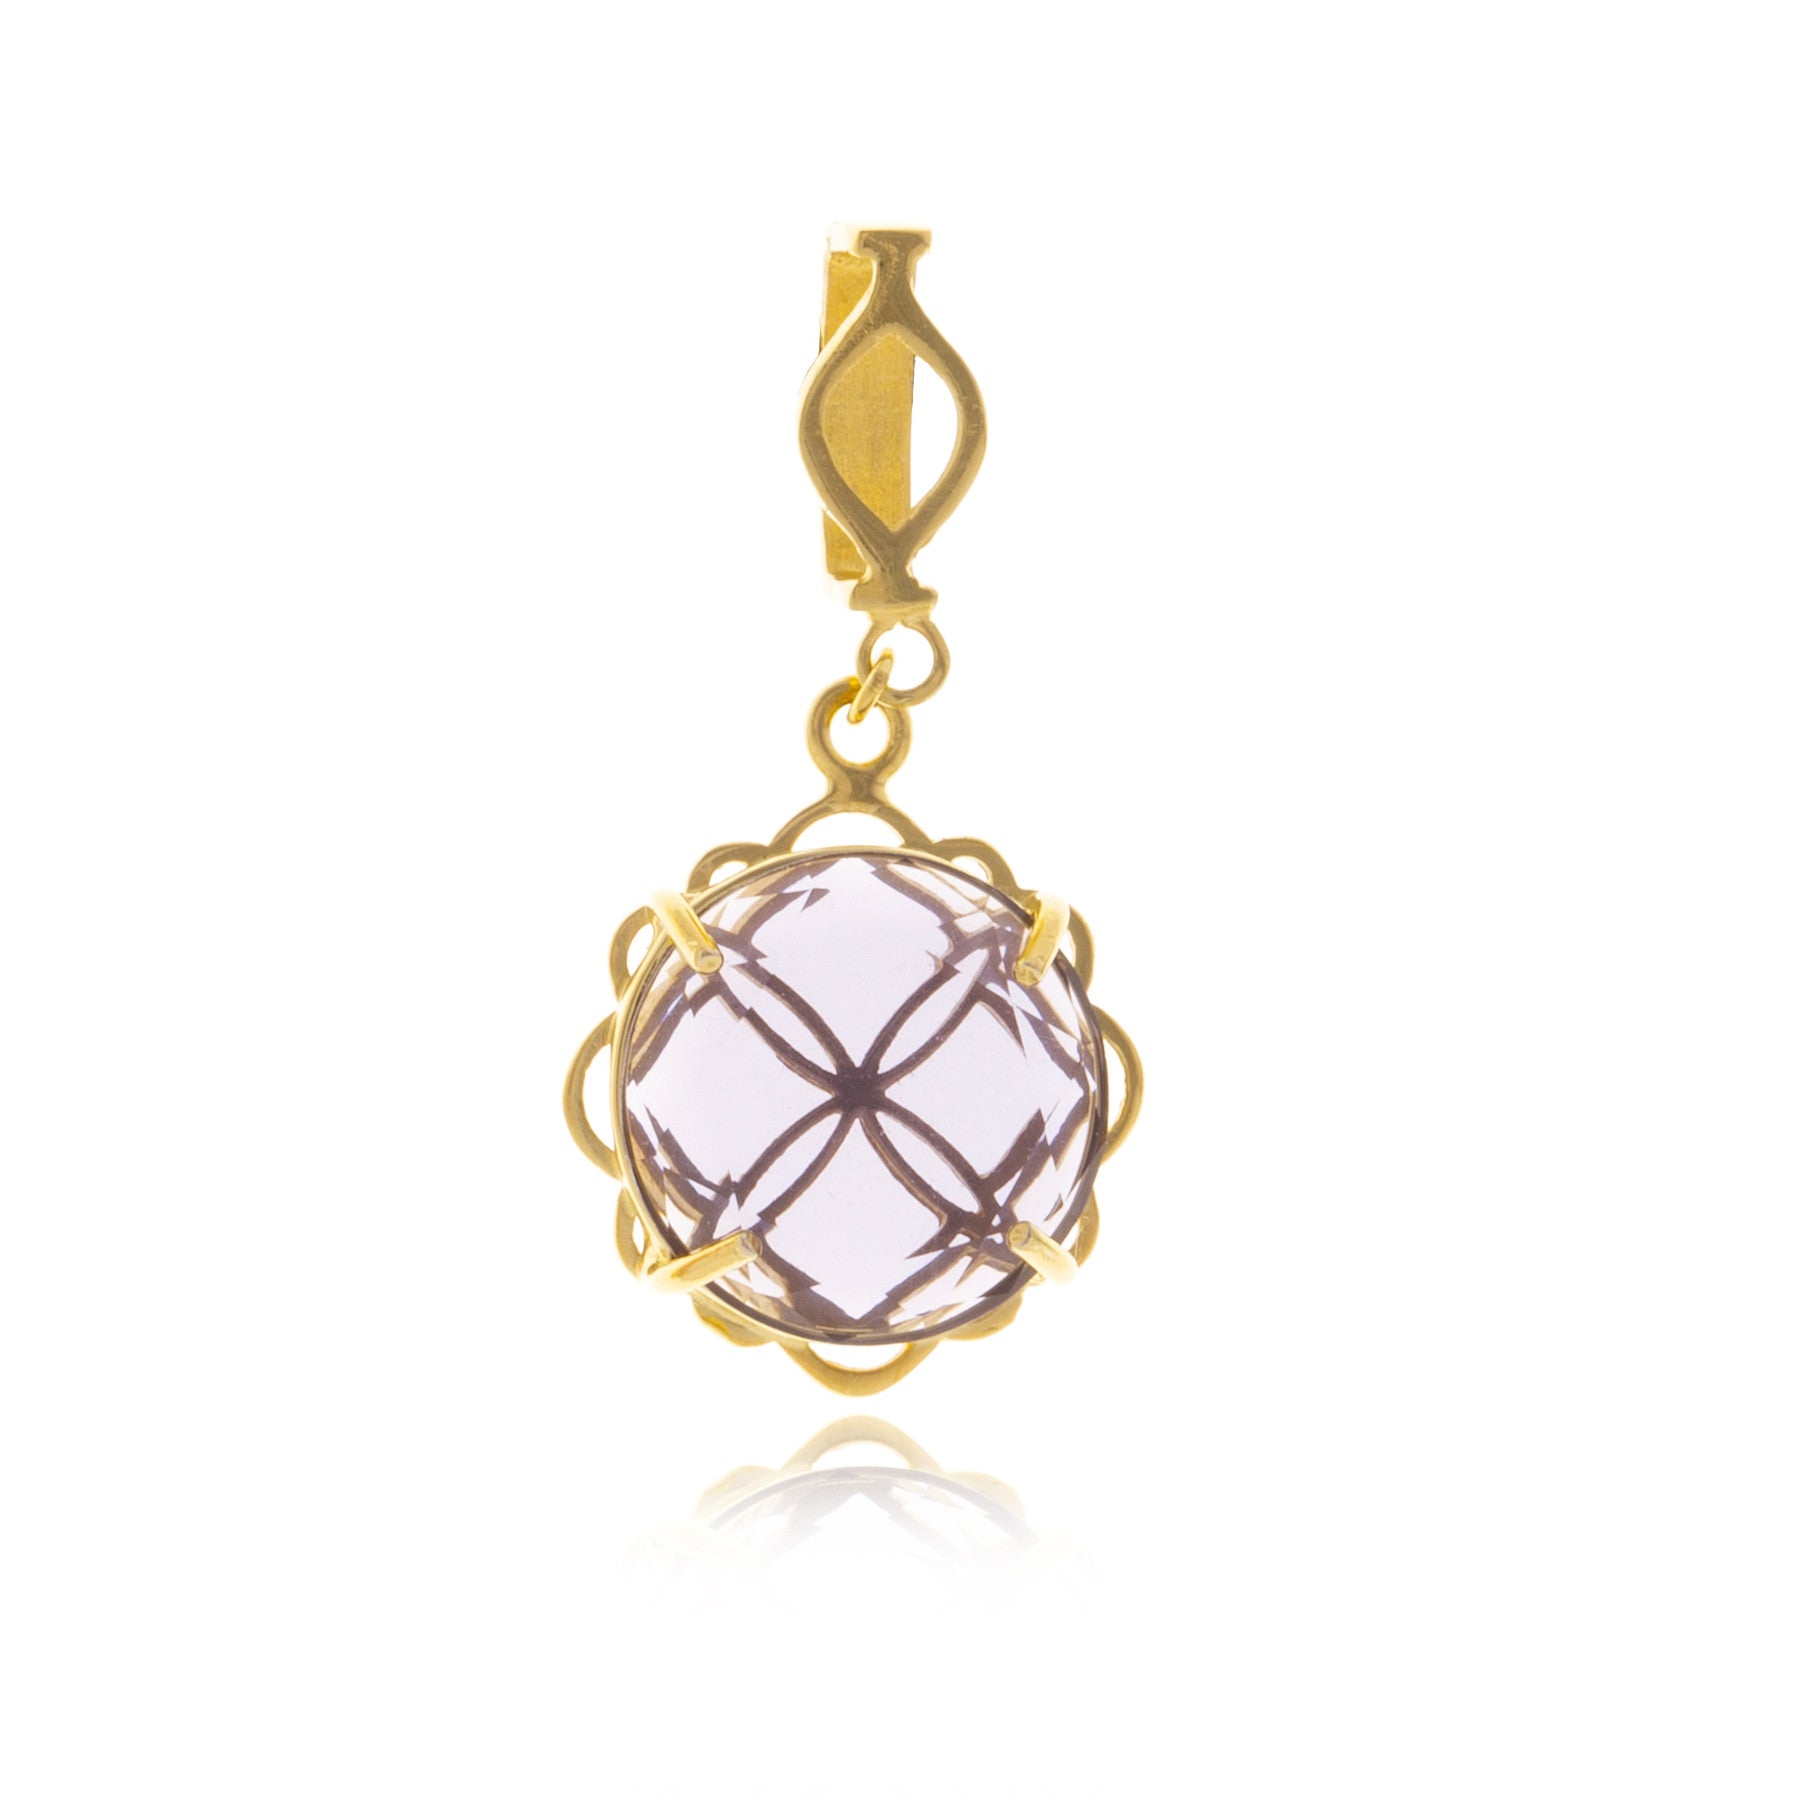 Signature Gold Crystal Flower Charm with Choker - MCK Brands